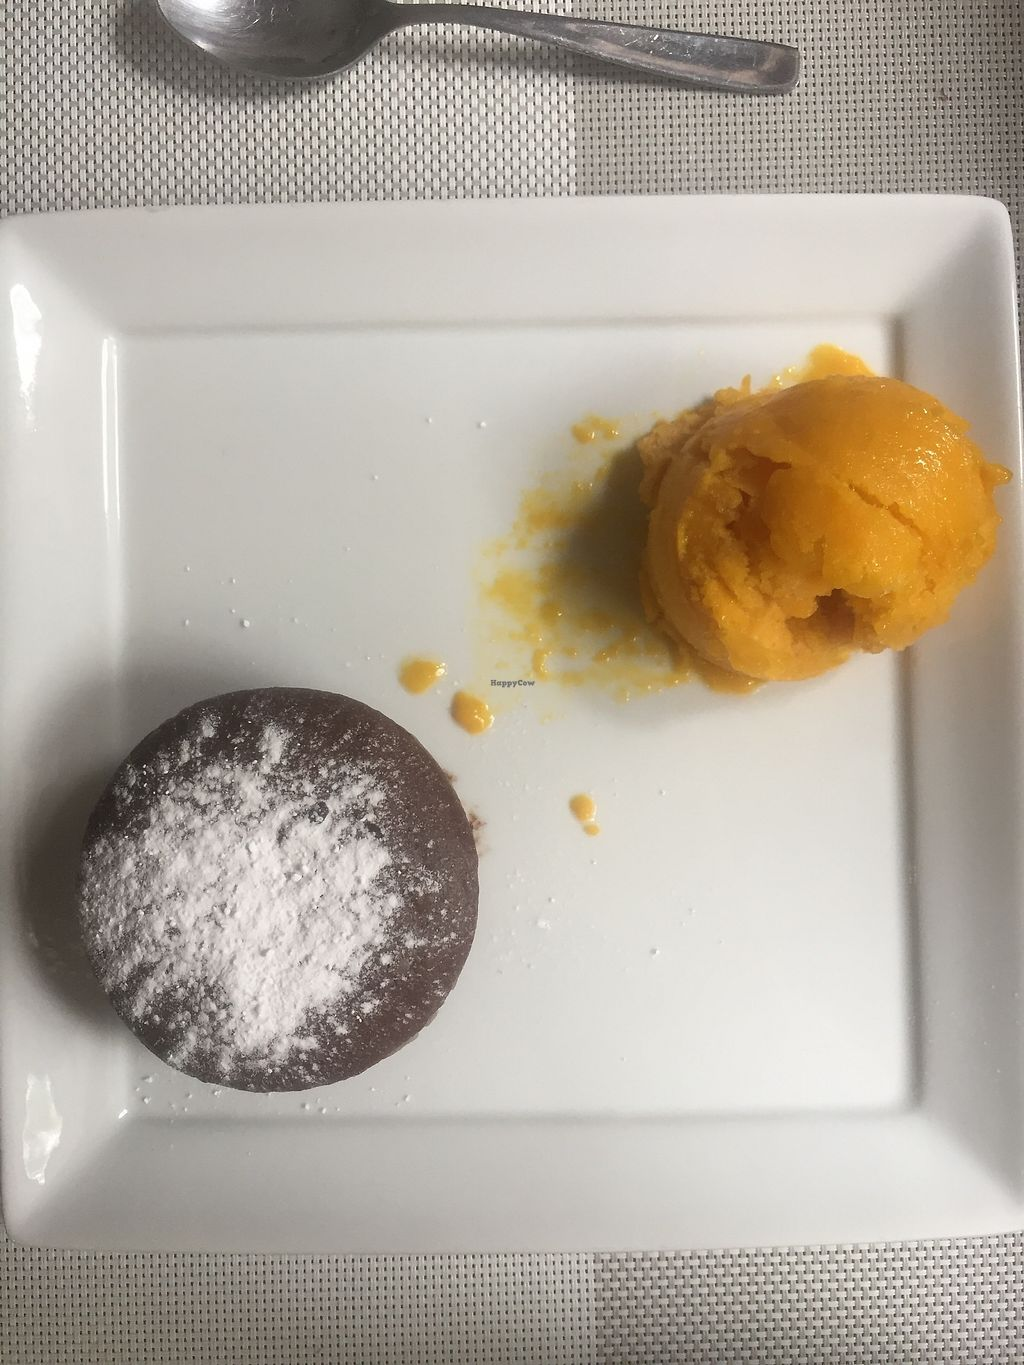 """Photo of Seitan Urban Bistro  by <a href=""""/members/profile/joegelay"""">joegelay</a> <br/>Chocolate lava cake (GREAT) with mango sorbet (meh, very frozen and not very fresh) <br/> December 31, 2017  - <a href='/contact/abuse/image/70536/341462'>Report</a>"""